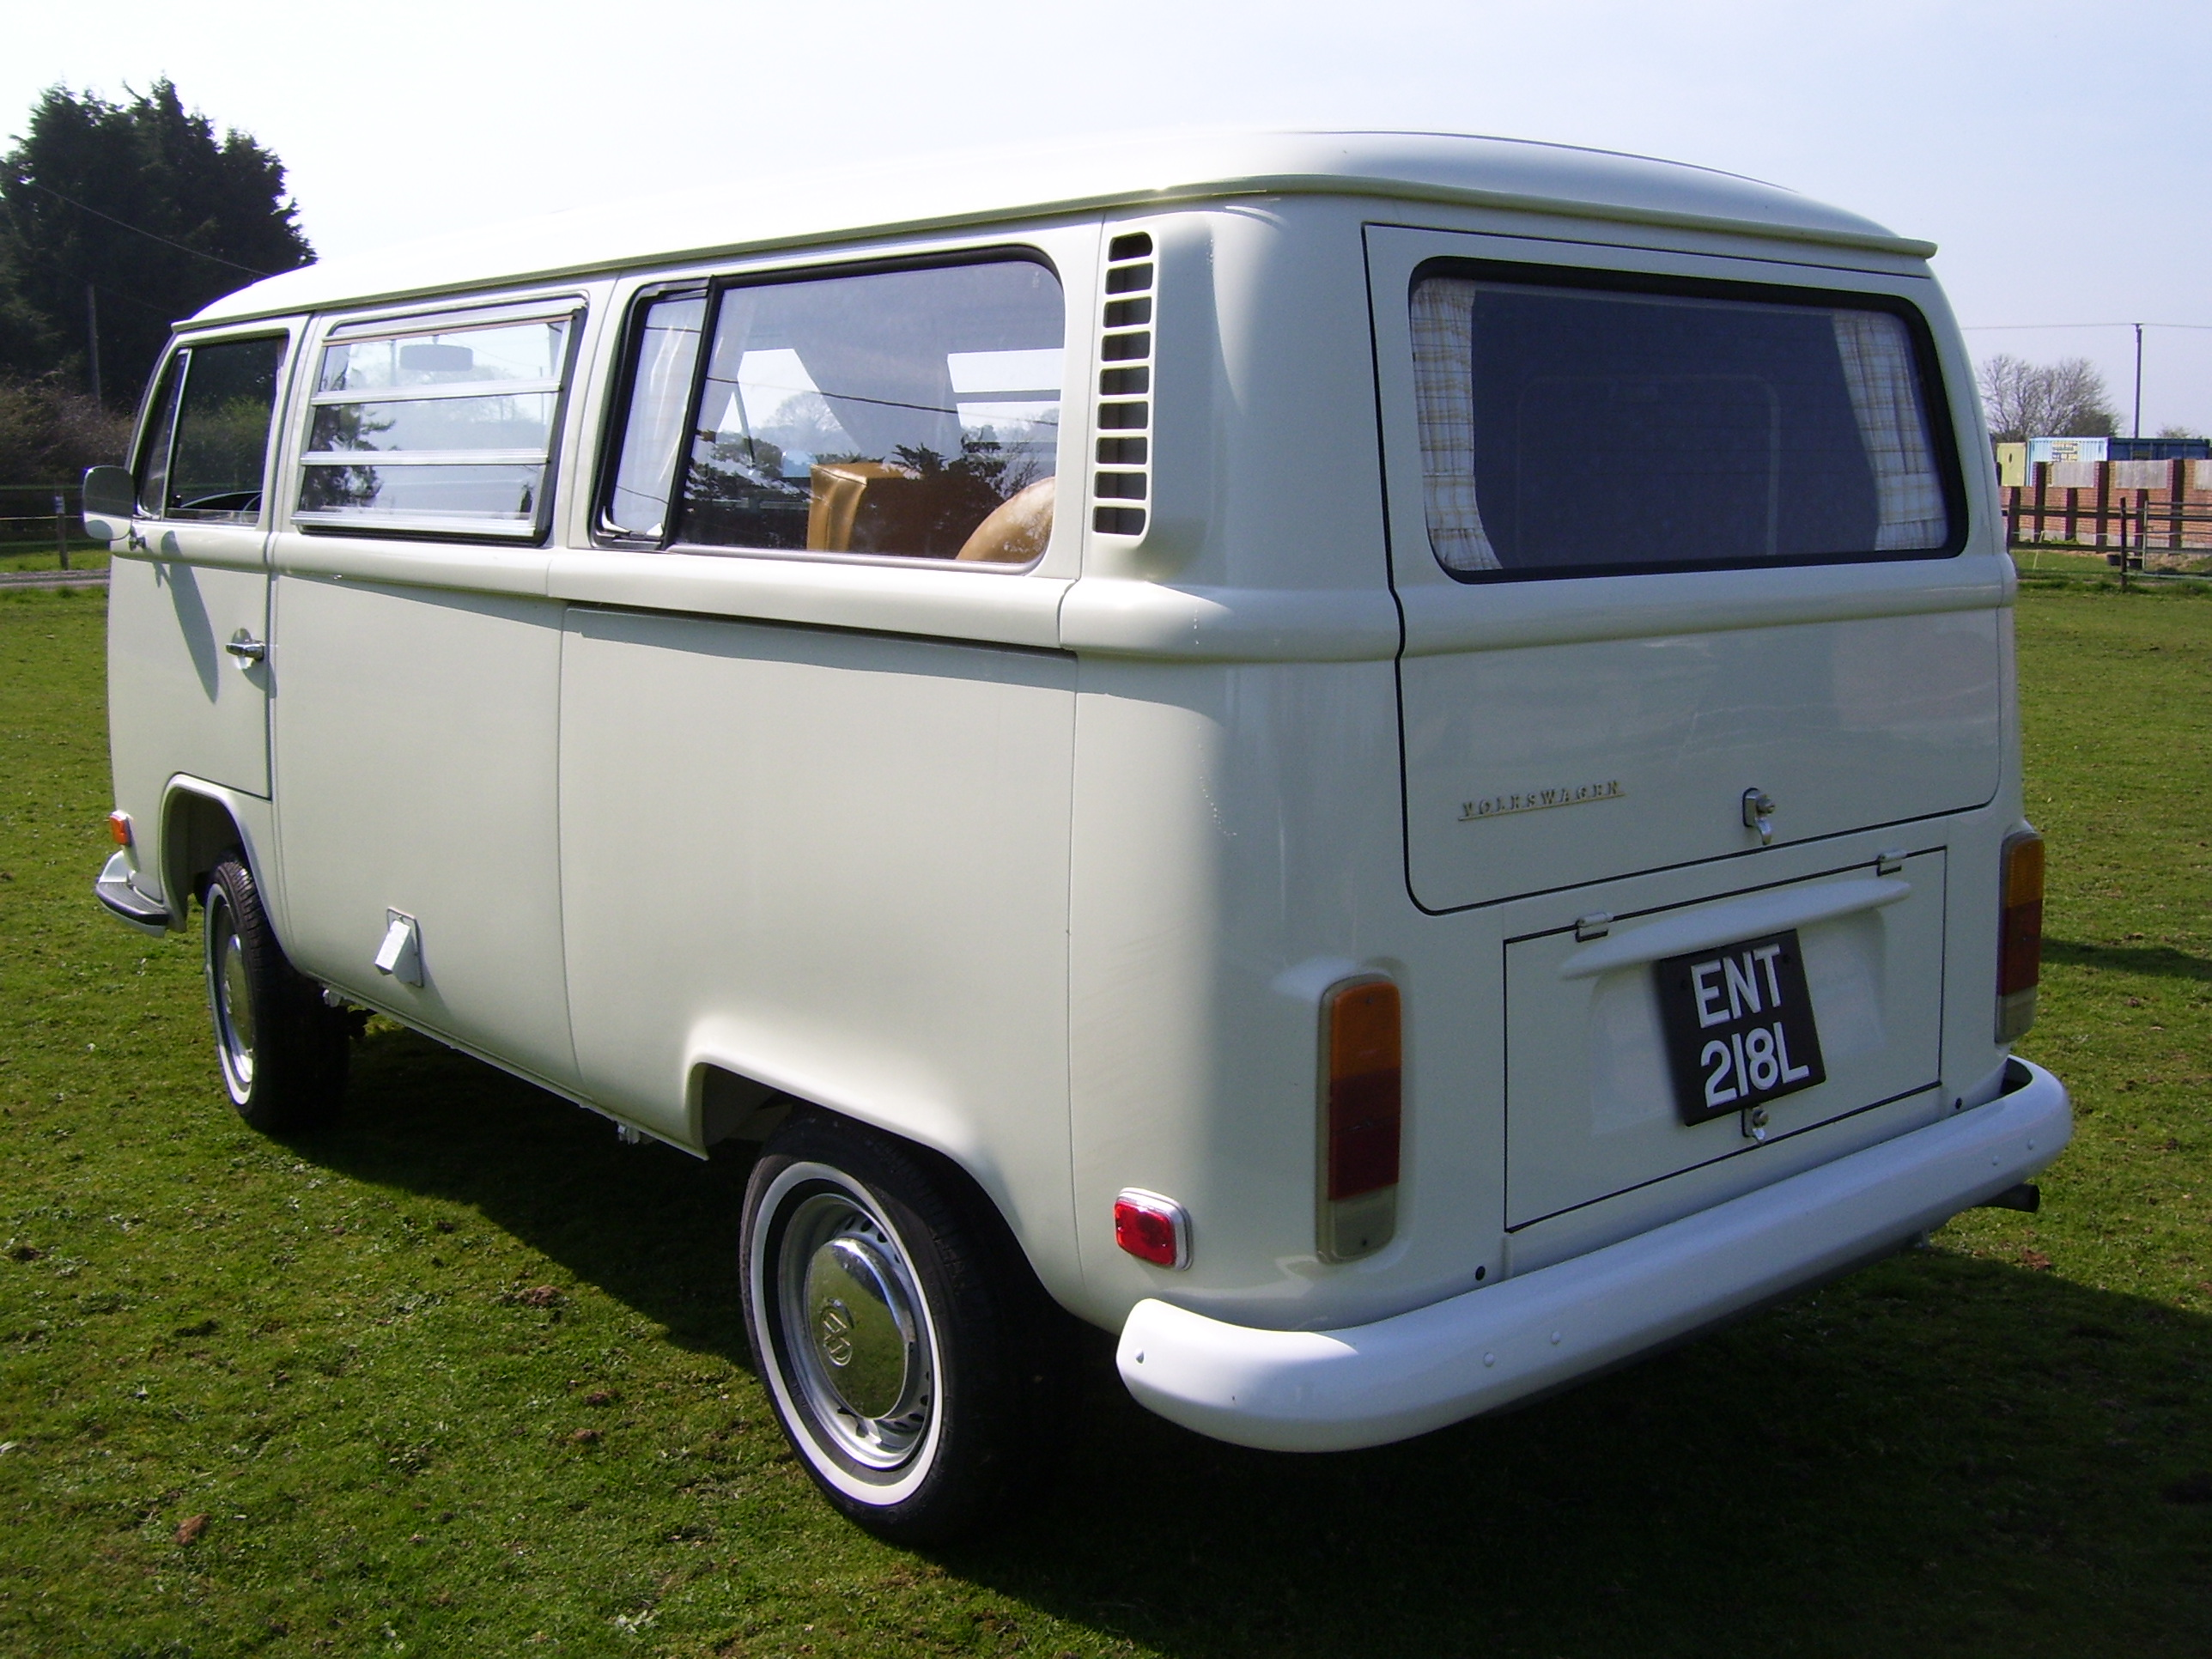 Campers For Sale Near Me >> Vans For Sale Coolcampers | Autos Post